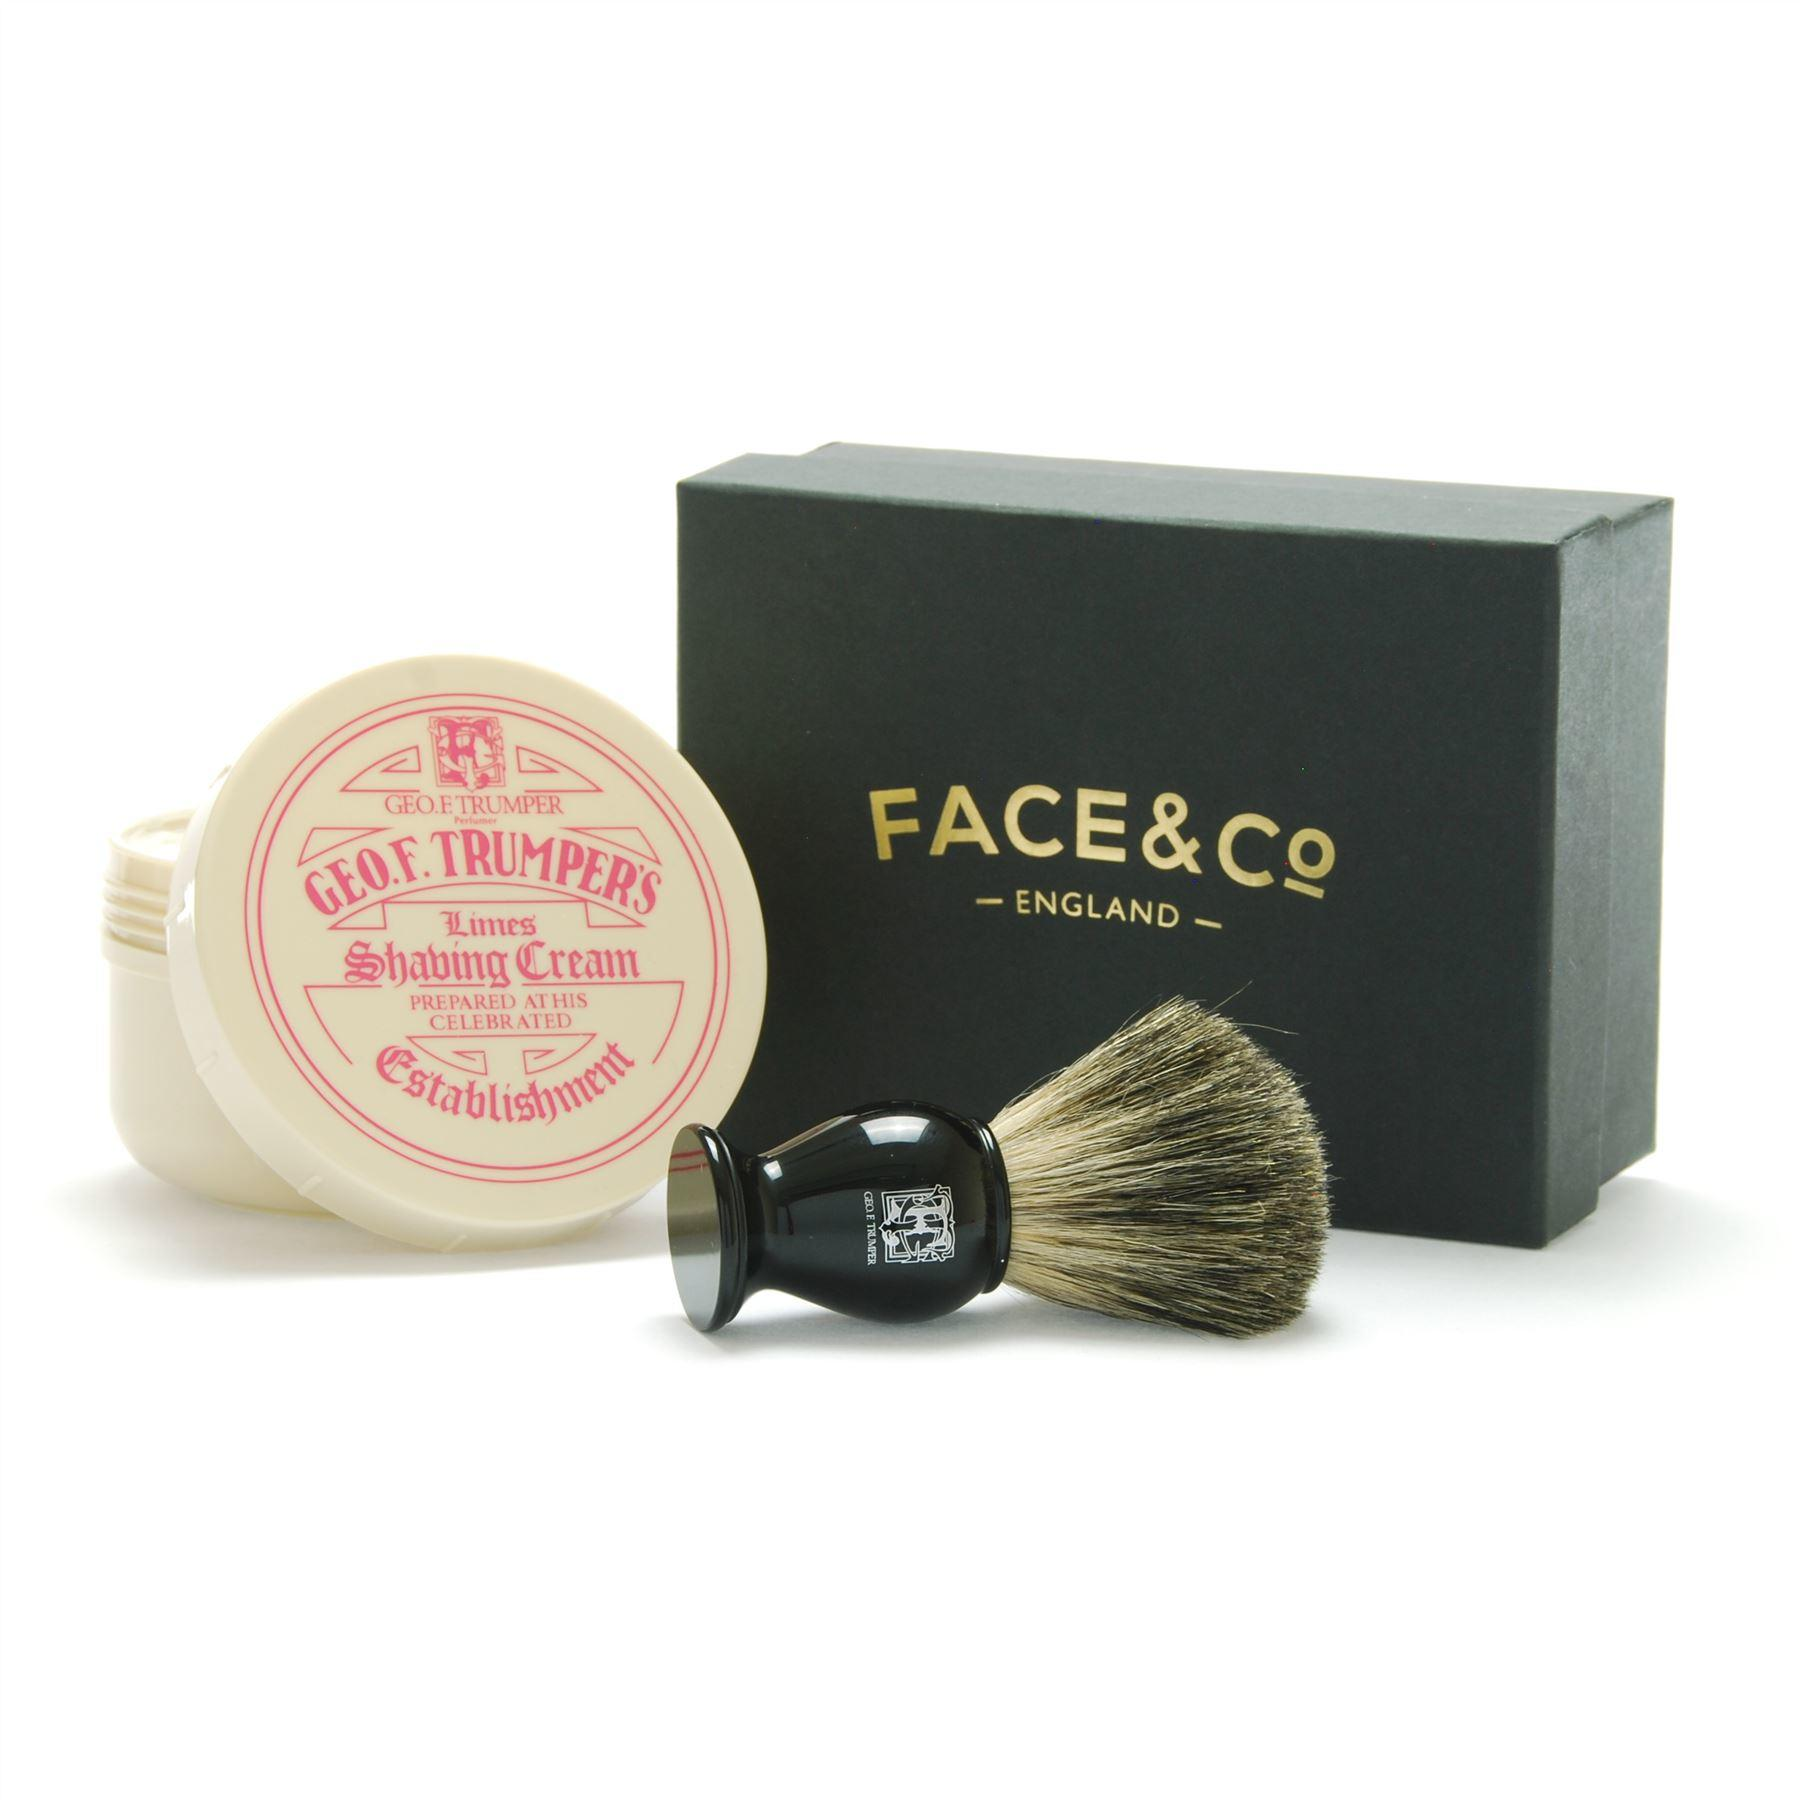 Geo F Trumper Black, Pure Badger Shaving Brush & Limes Shave Cream Gift Set